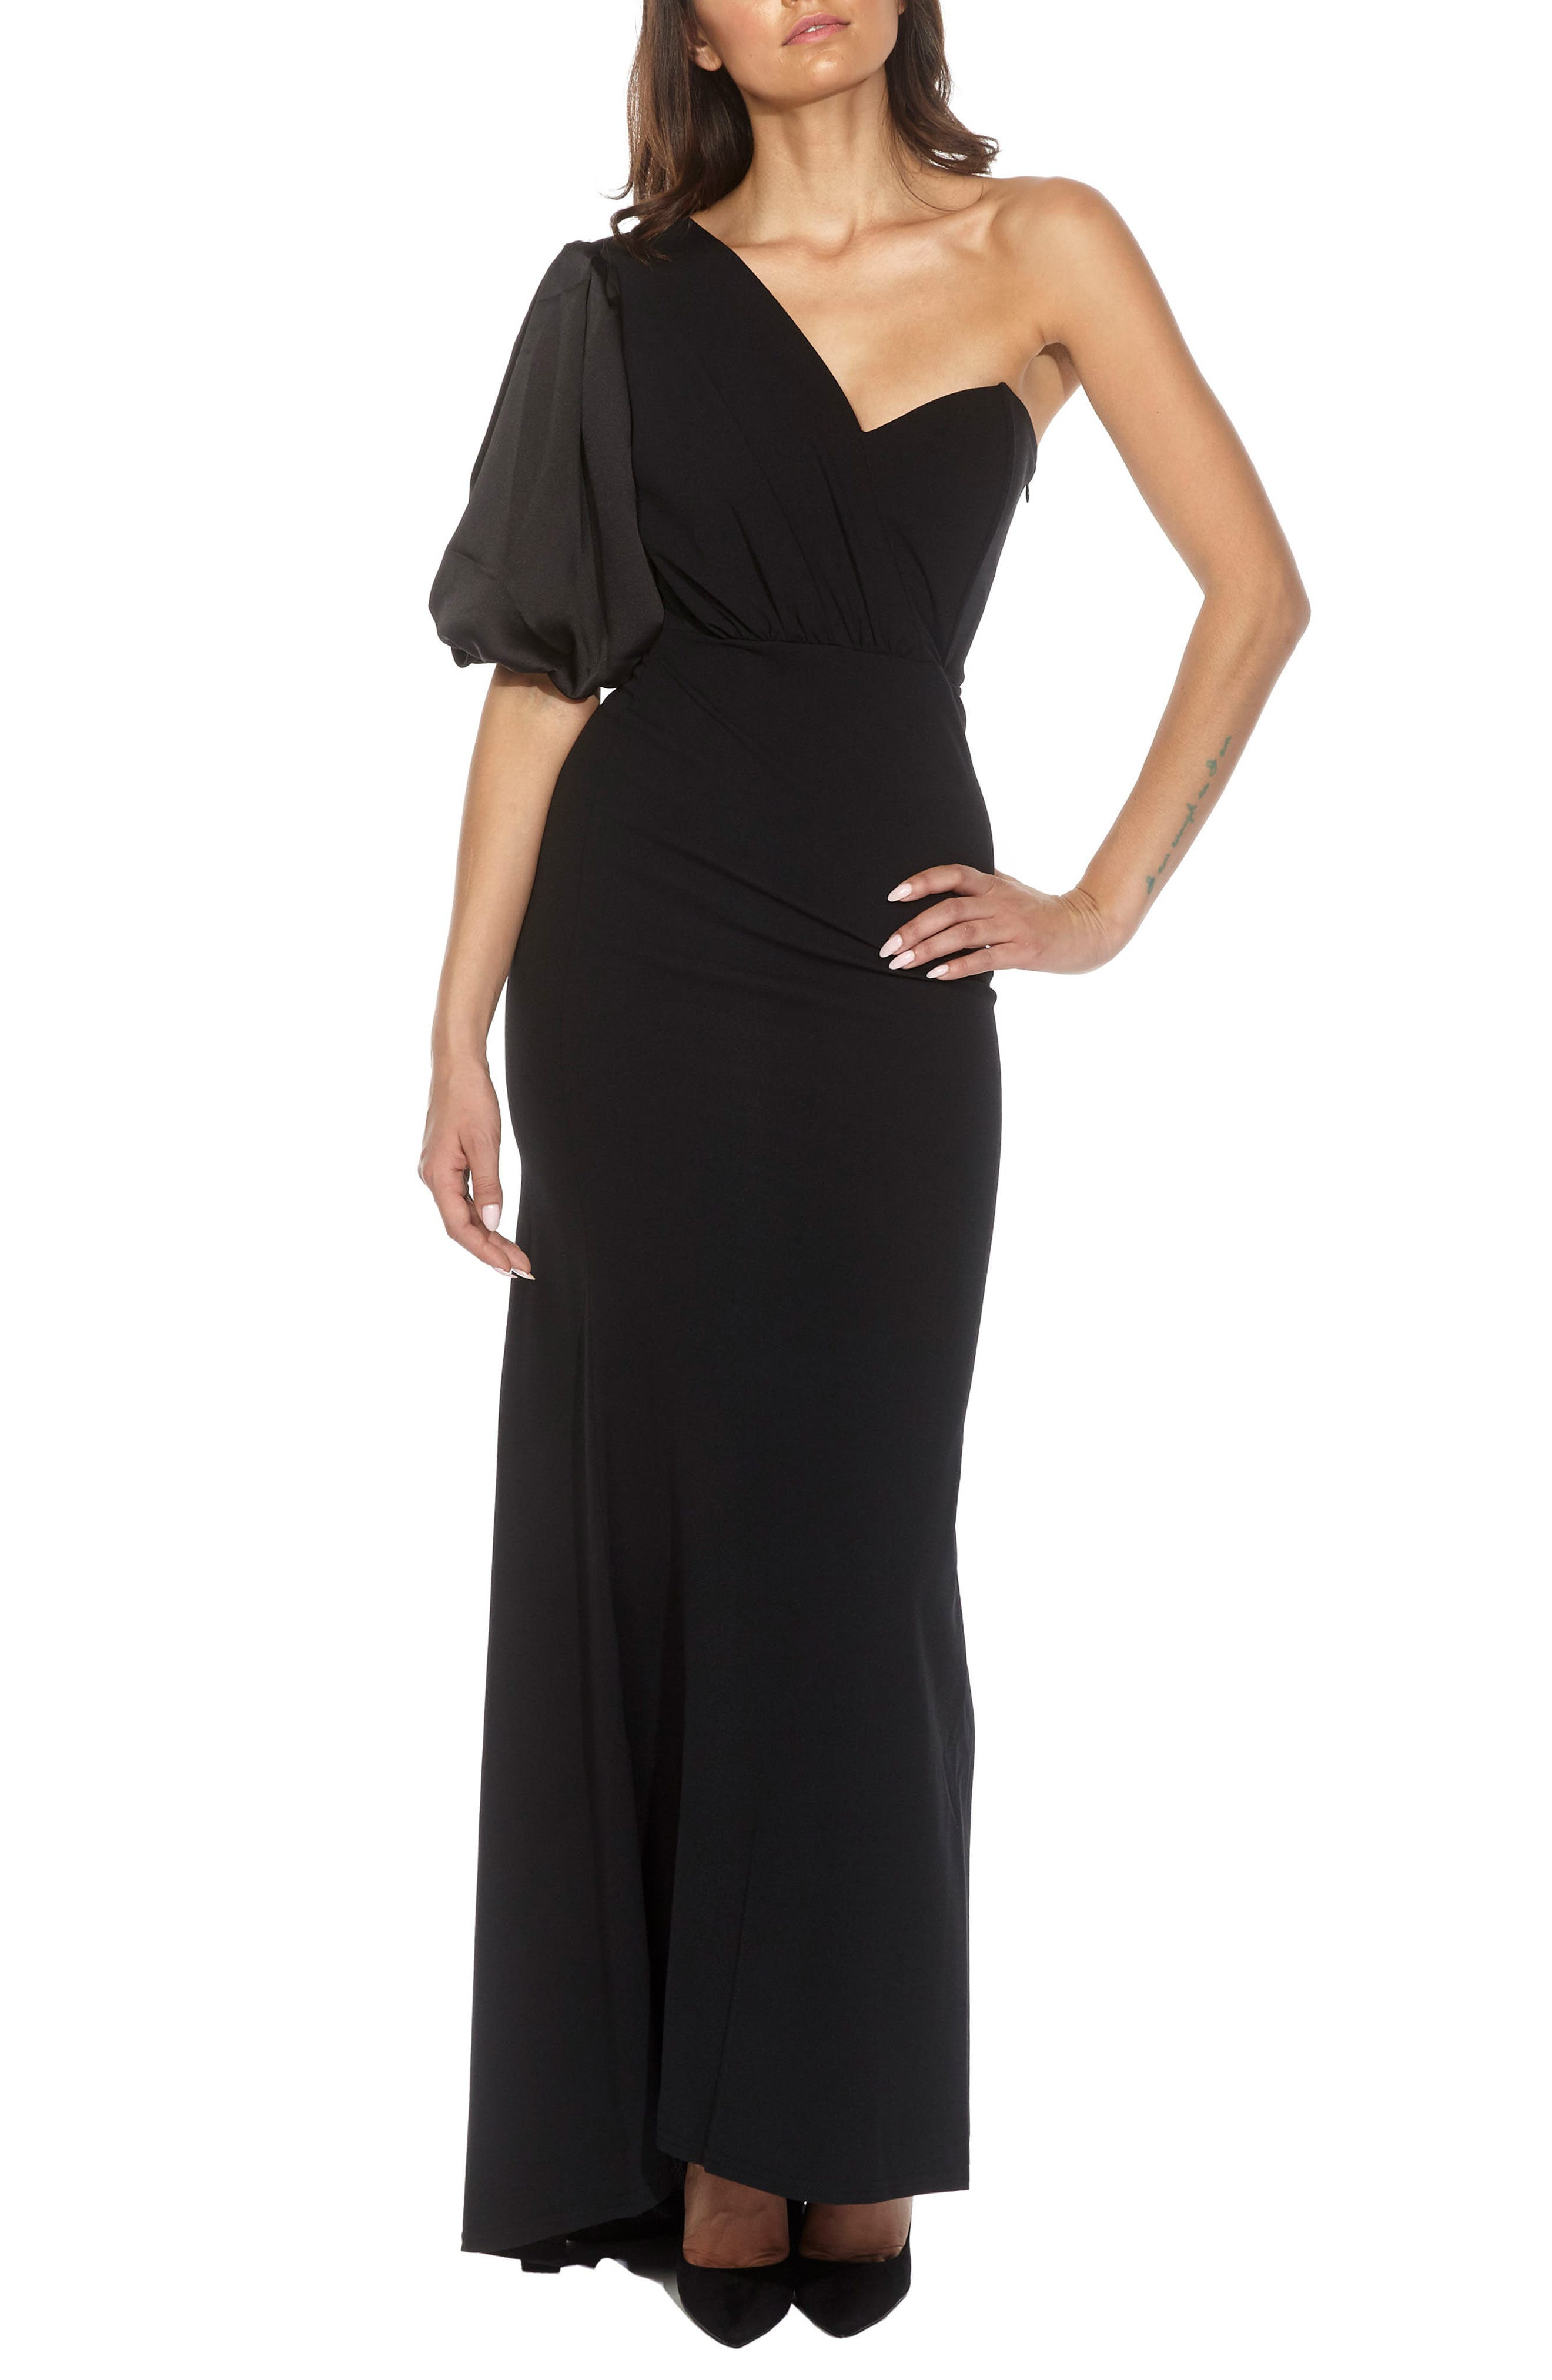 Nawell One-Shoulder Puff Sleeve Gown,                         Main,                         color, 001